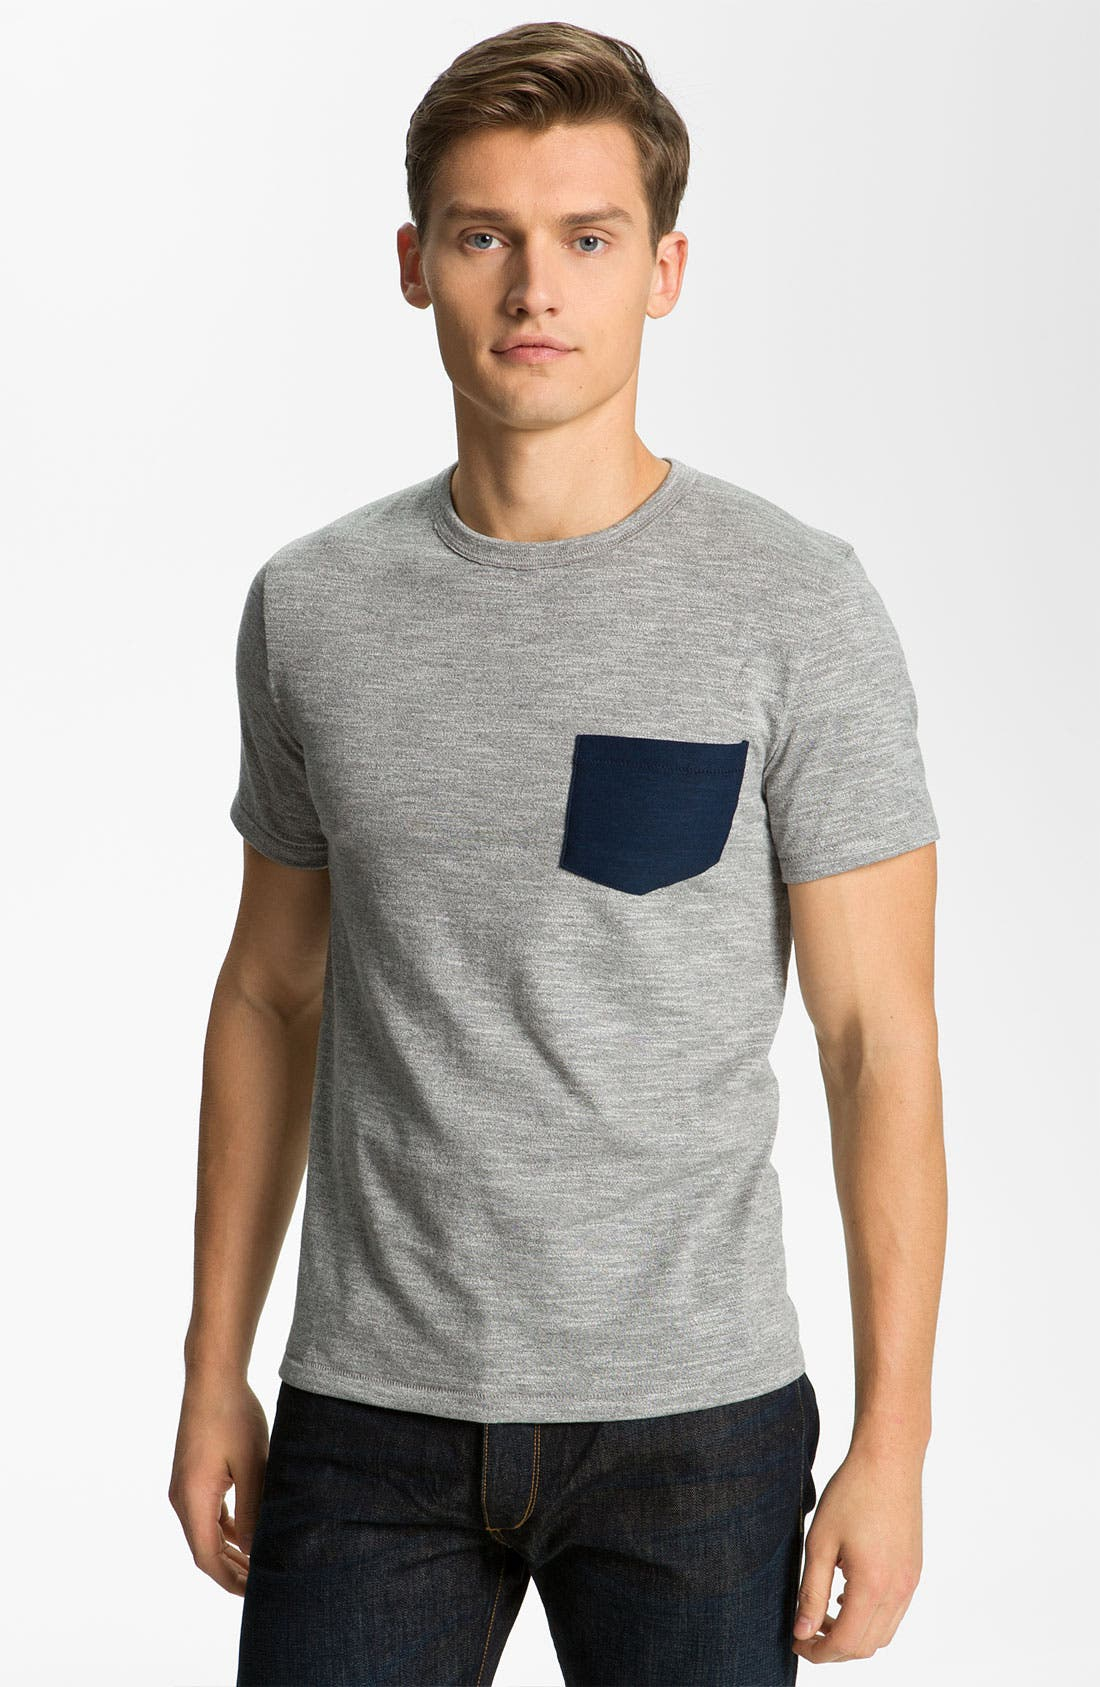 Alternate Image 1 Selected - rag & bone Pocket Crewneck T-Shirt